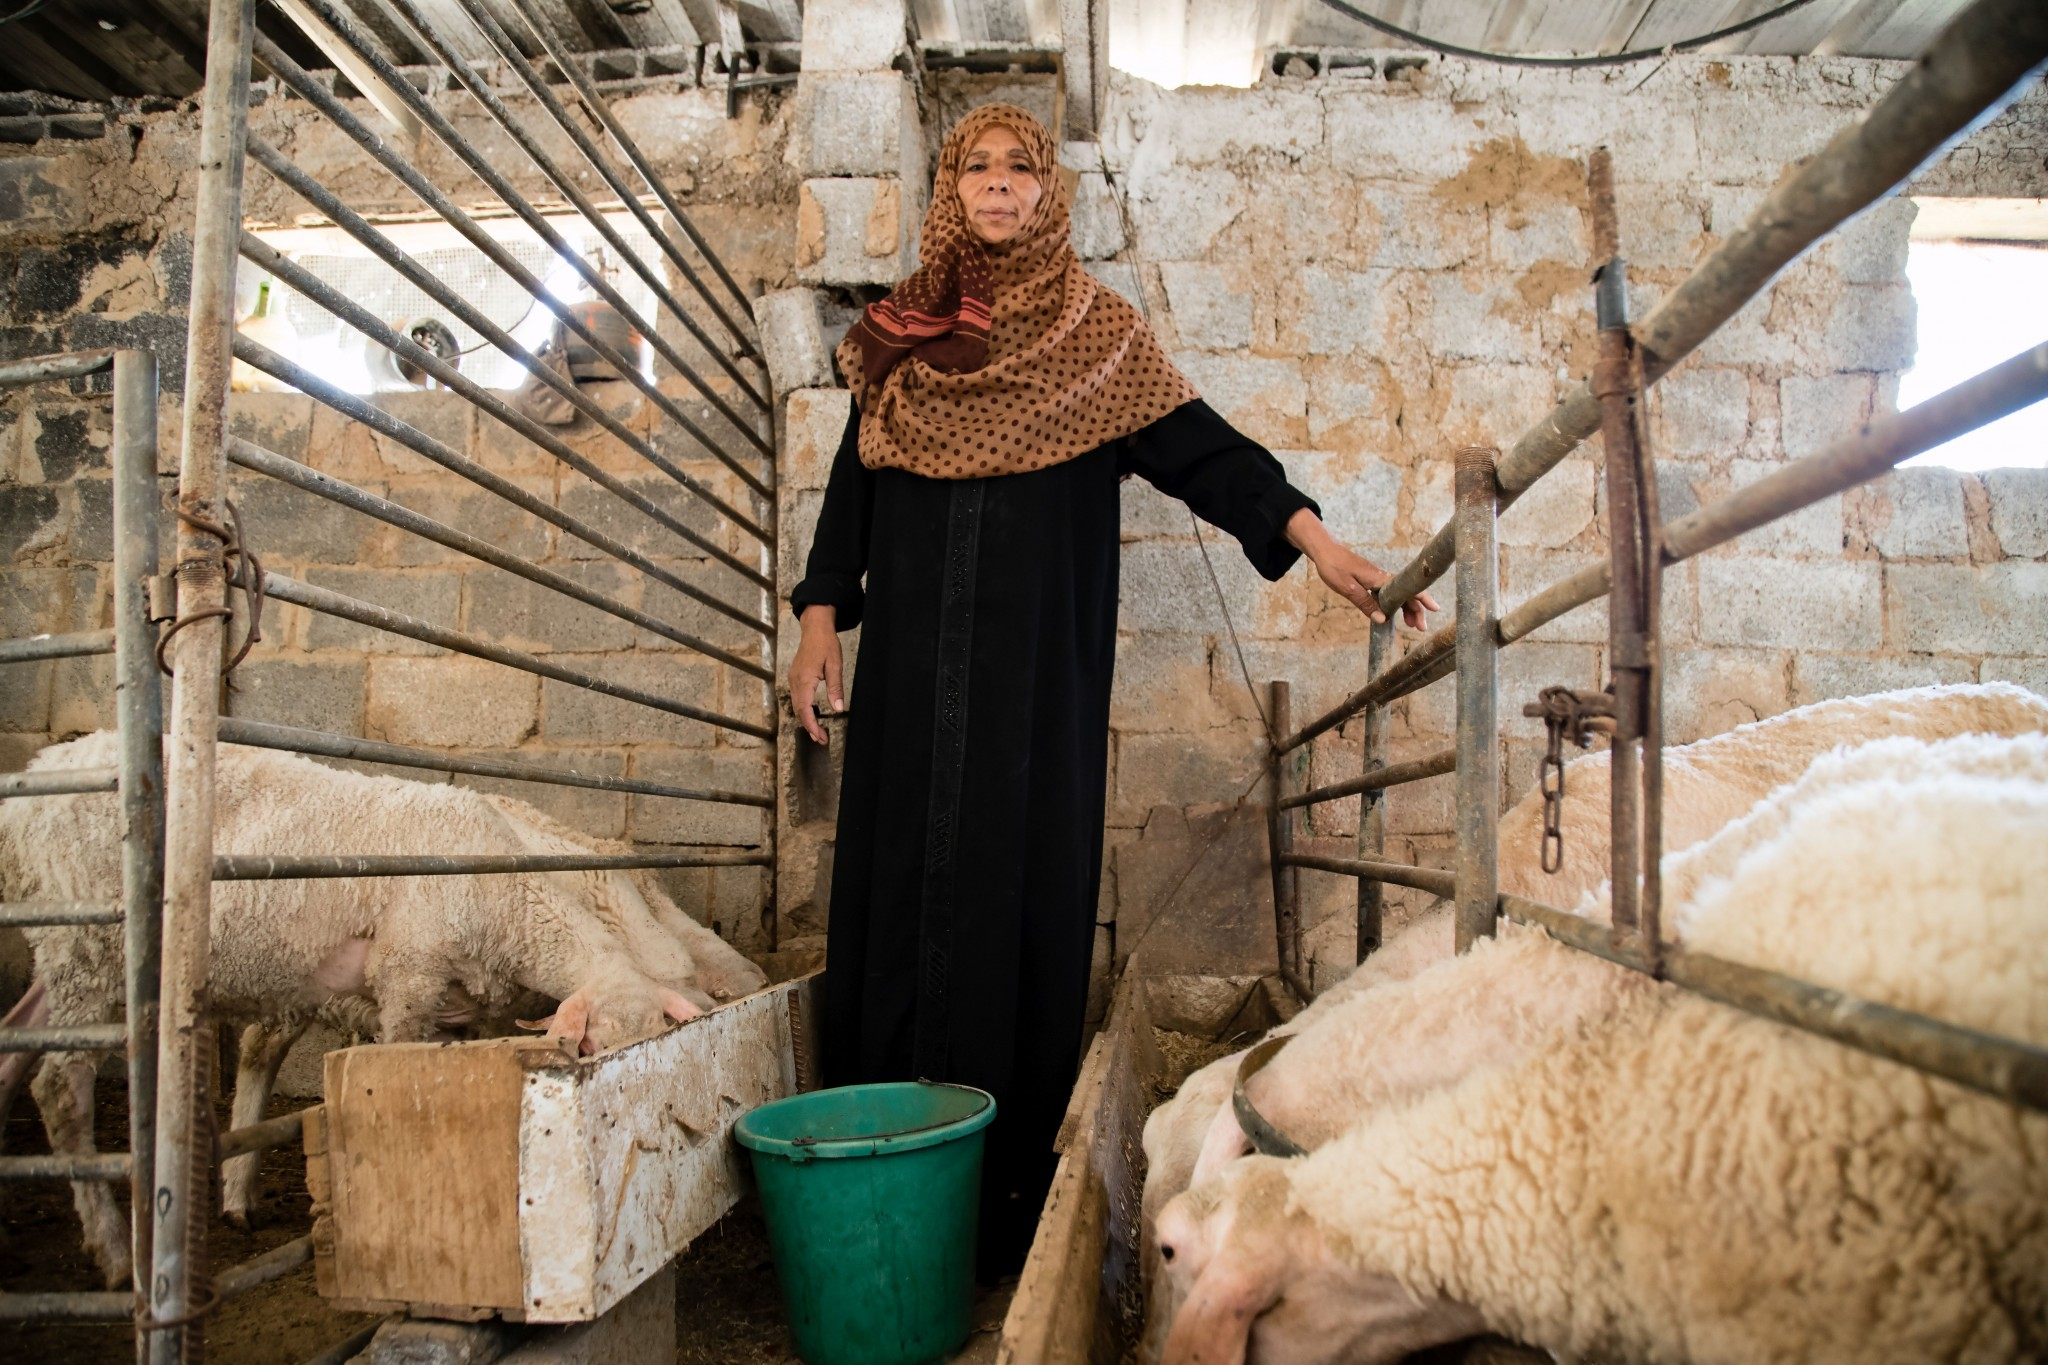 Suhaila Najjar, herder in the buffer zone, June 2018. Photo by Gisha